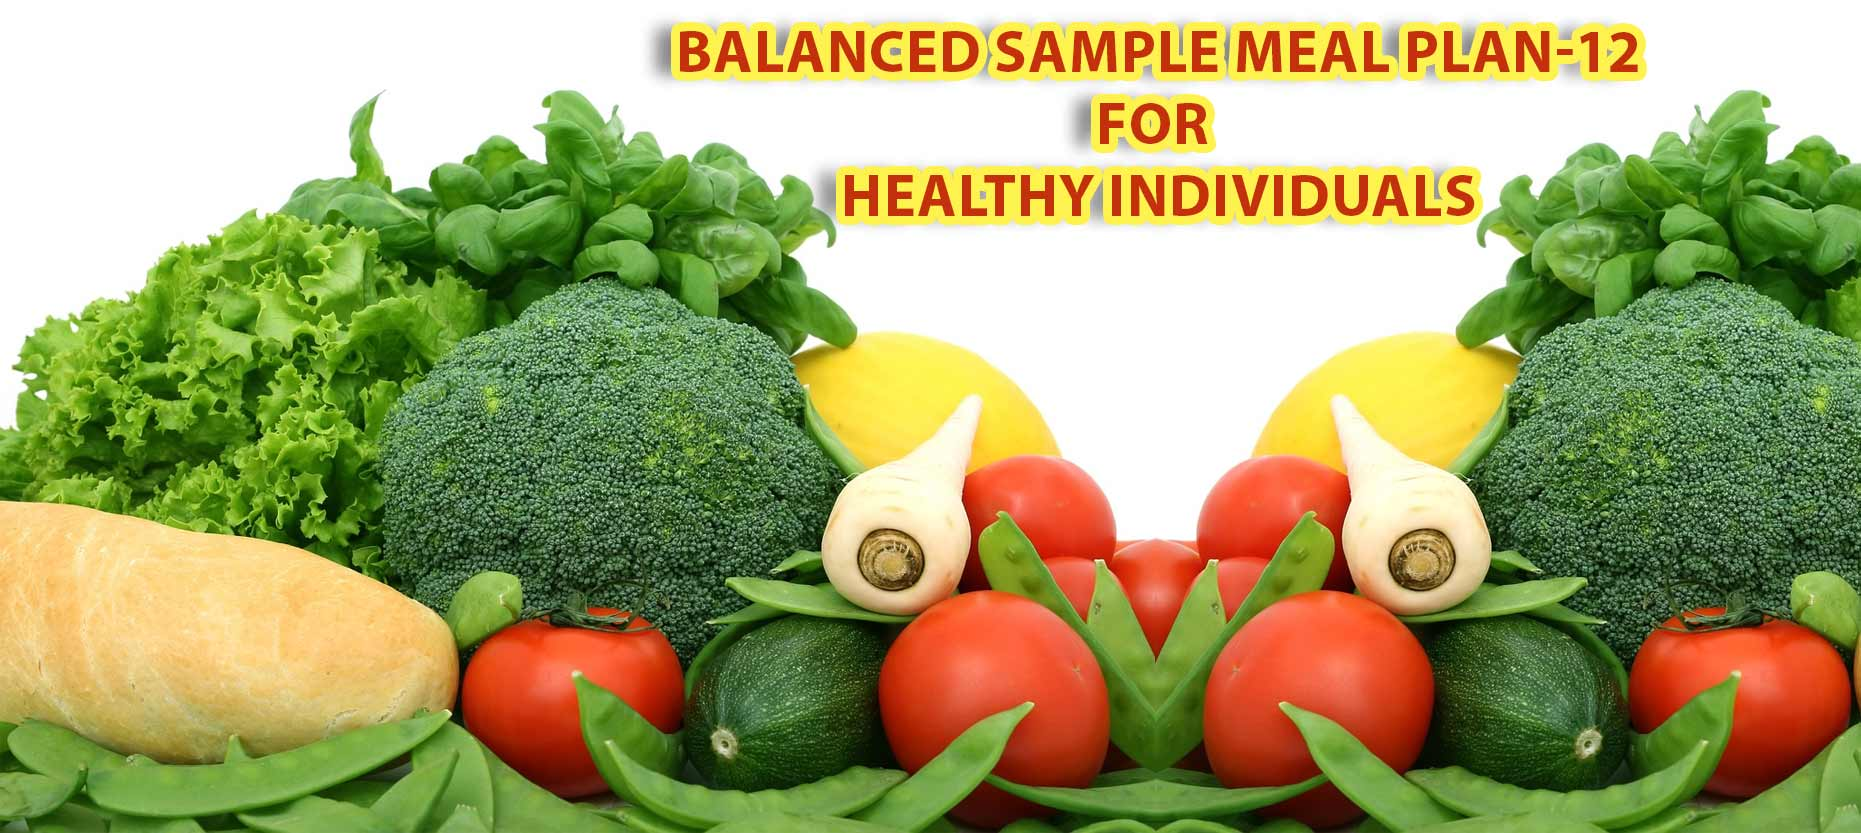 Balanced Sample Meal Plan-12 For Healthy Individuals